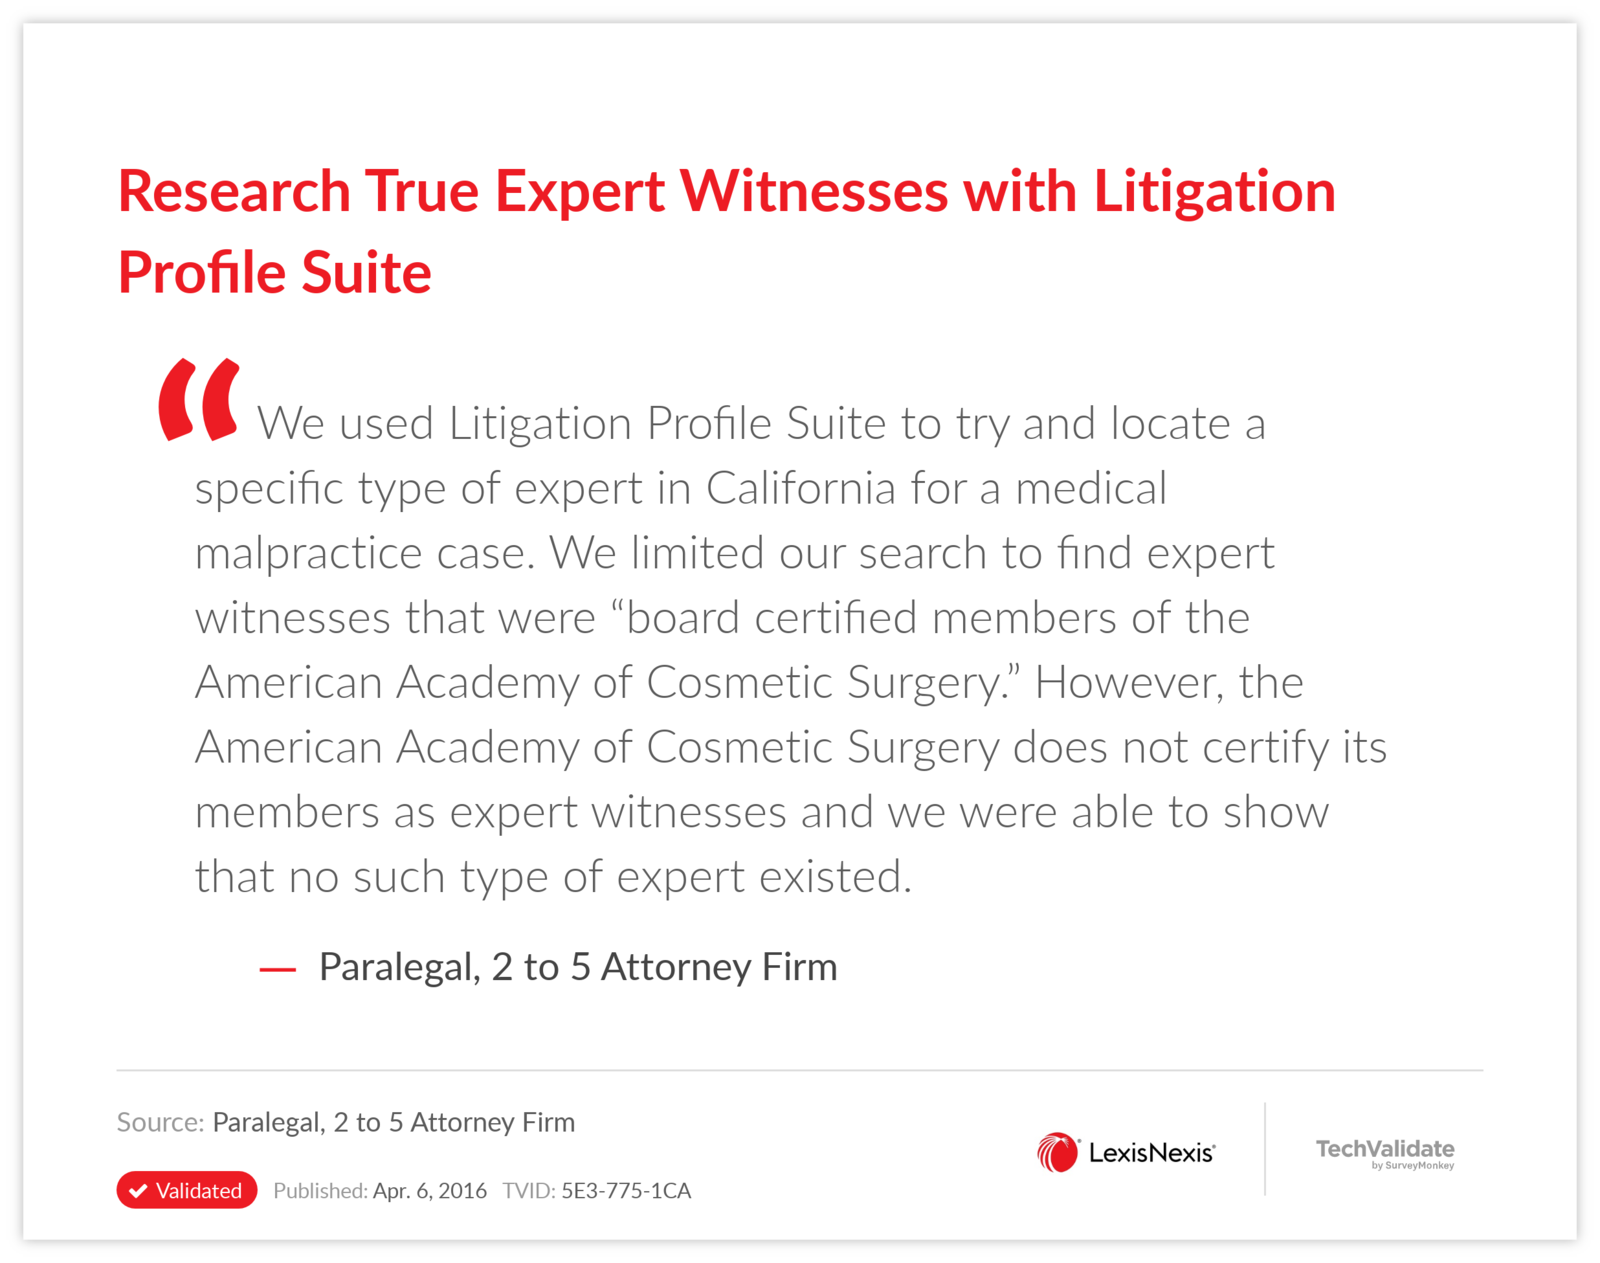 Research True Expert Witnesses with Litigation Profile Suite